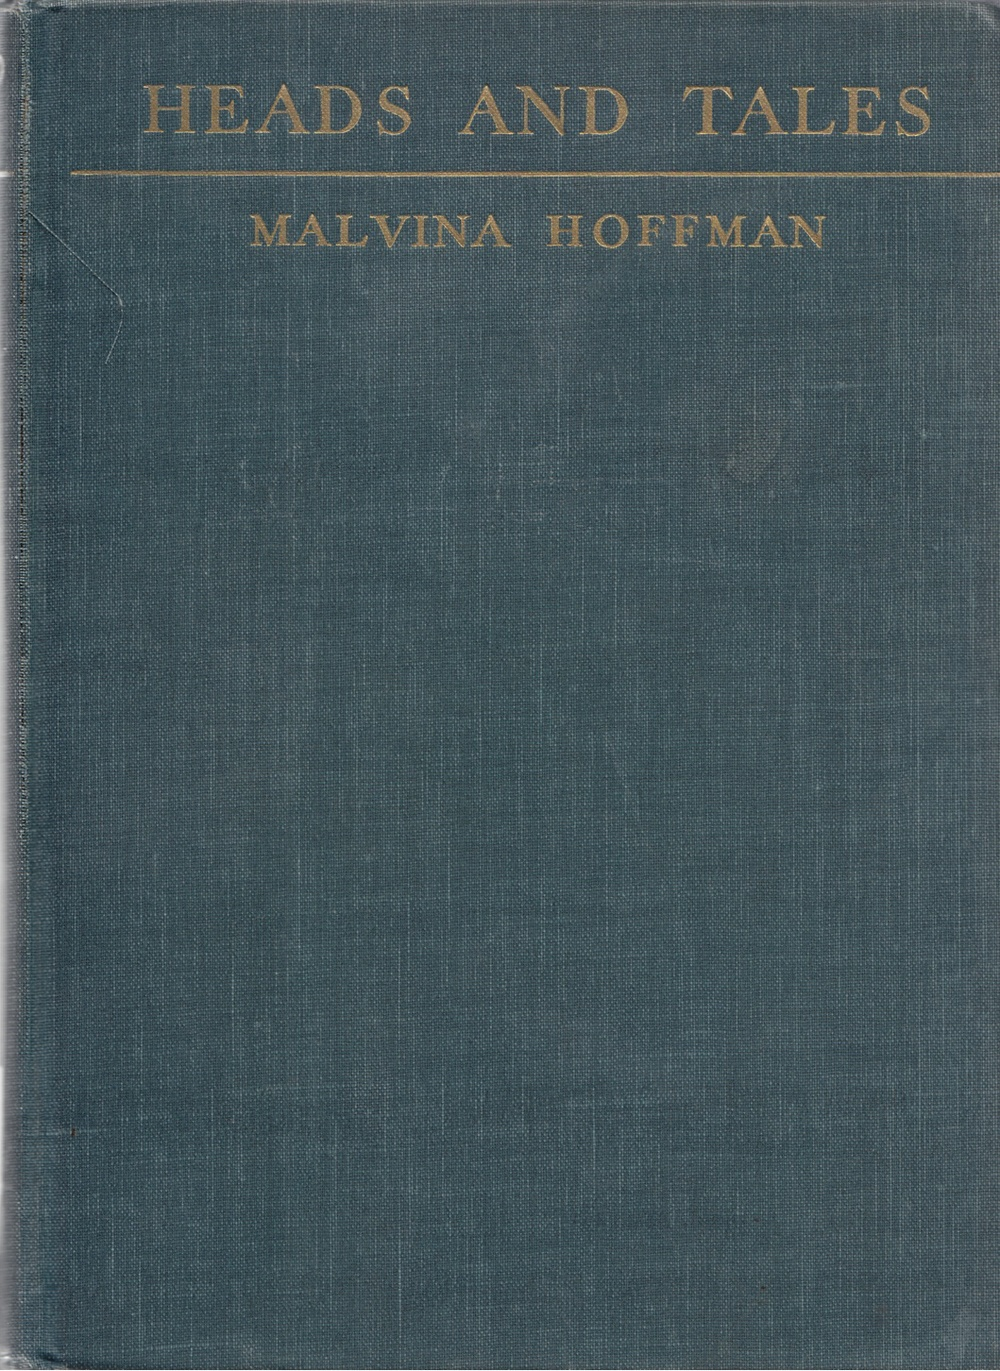 Cover of Hoffman's memoir,  Heads and Tales